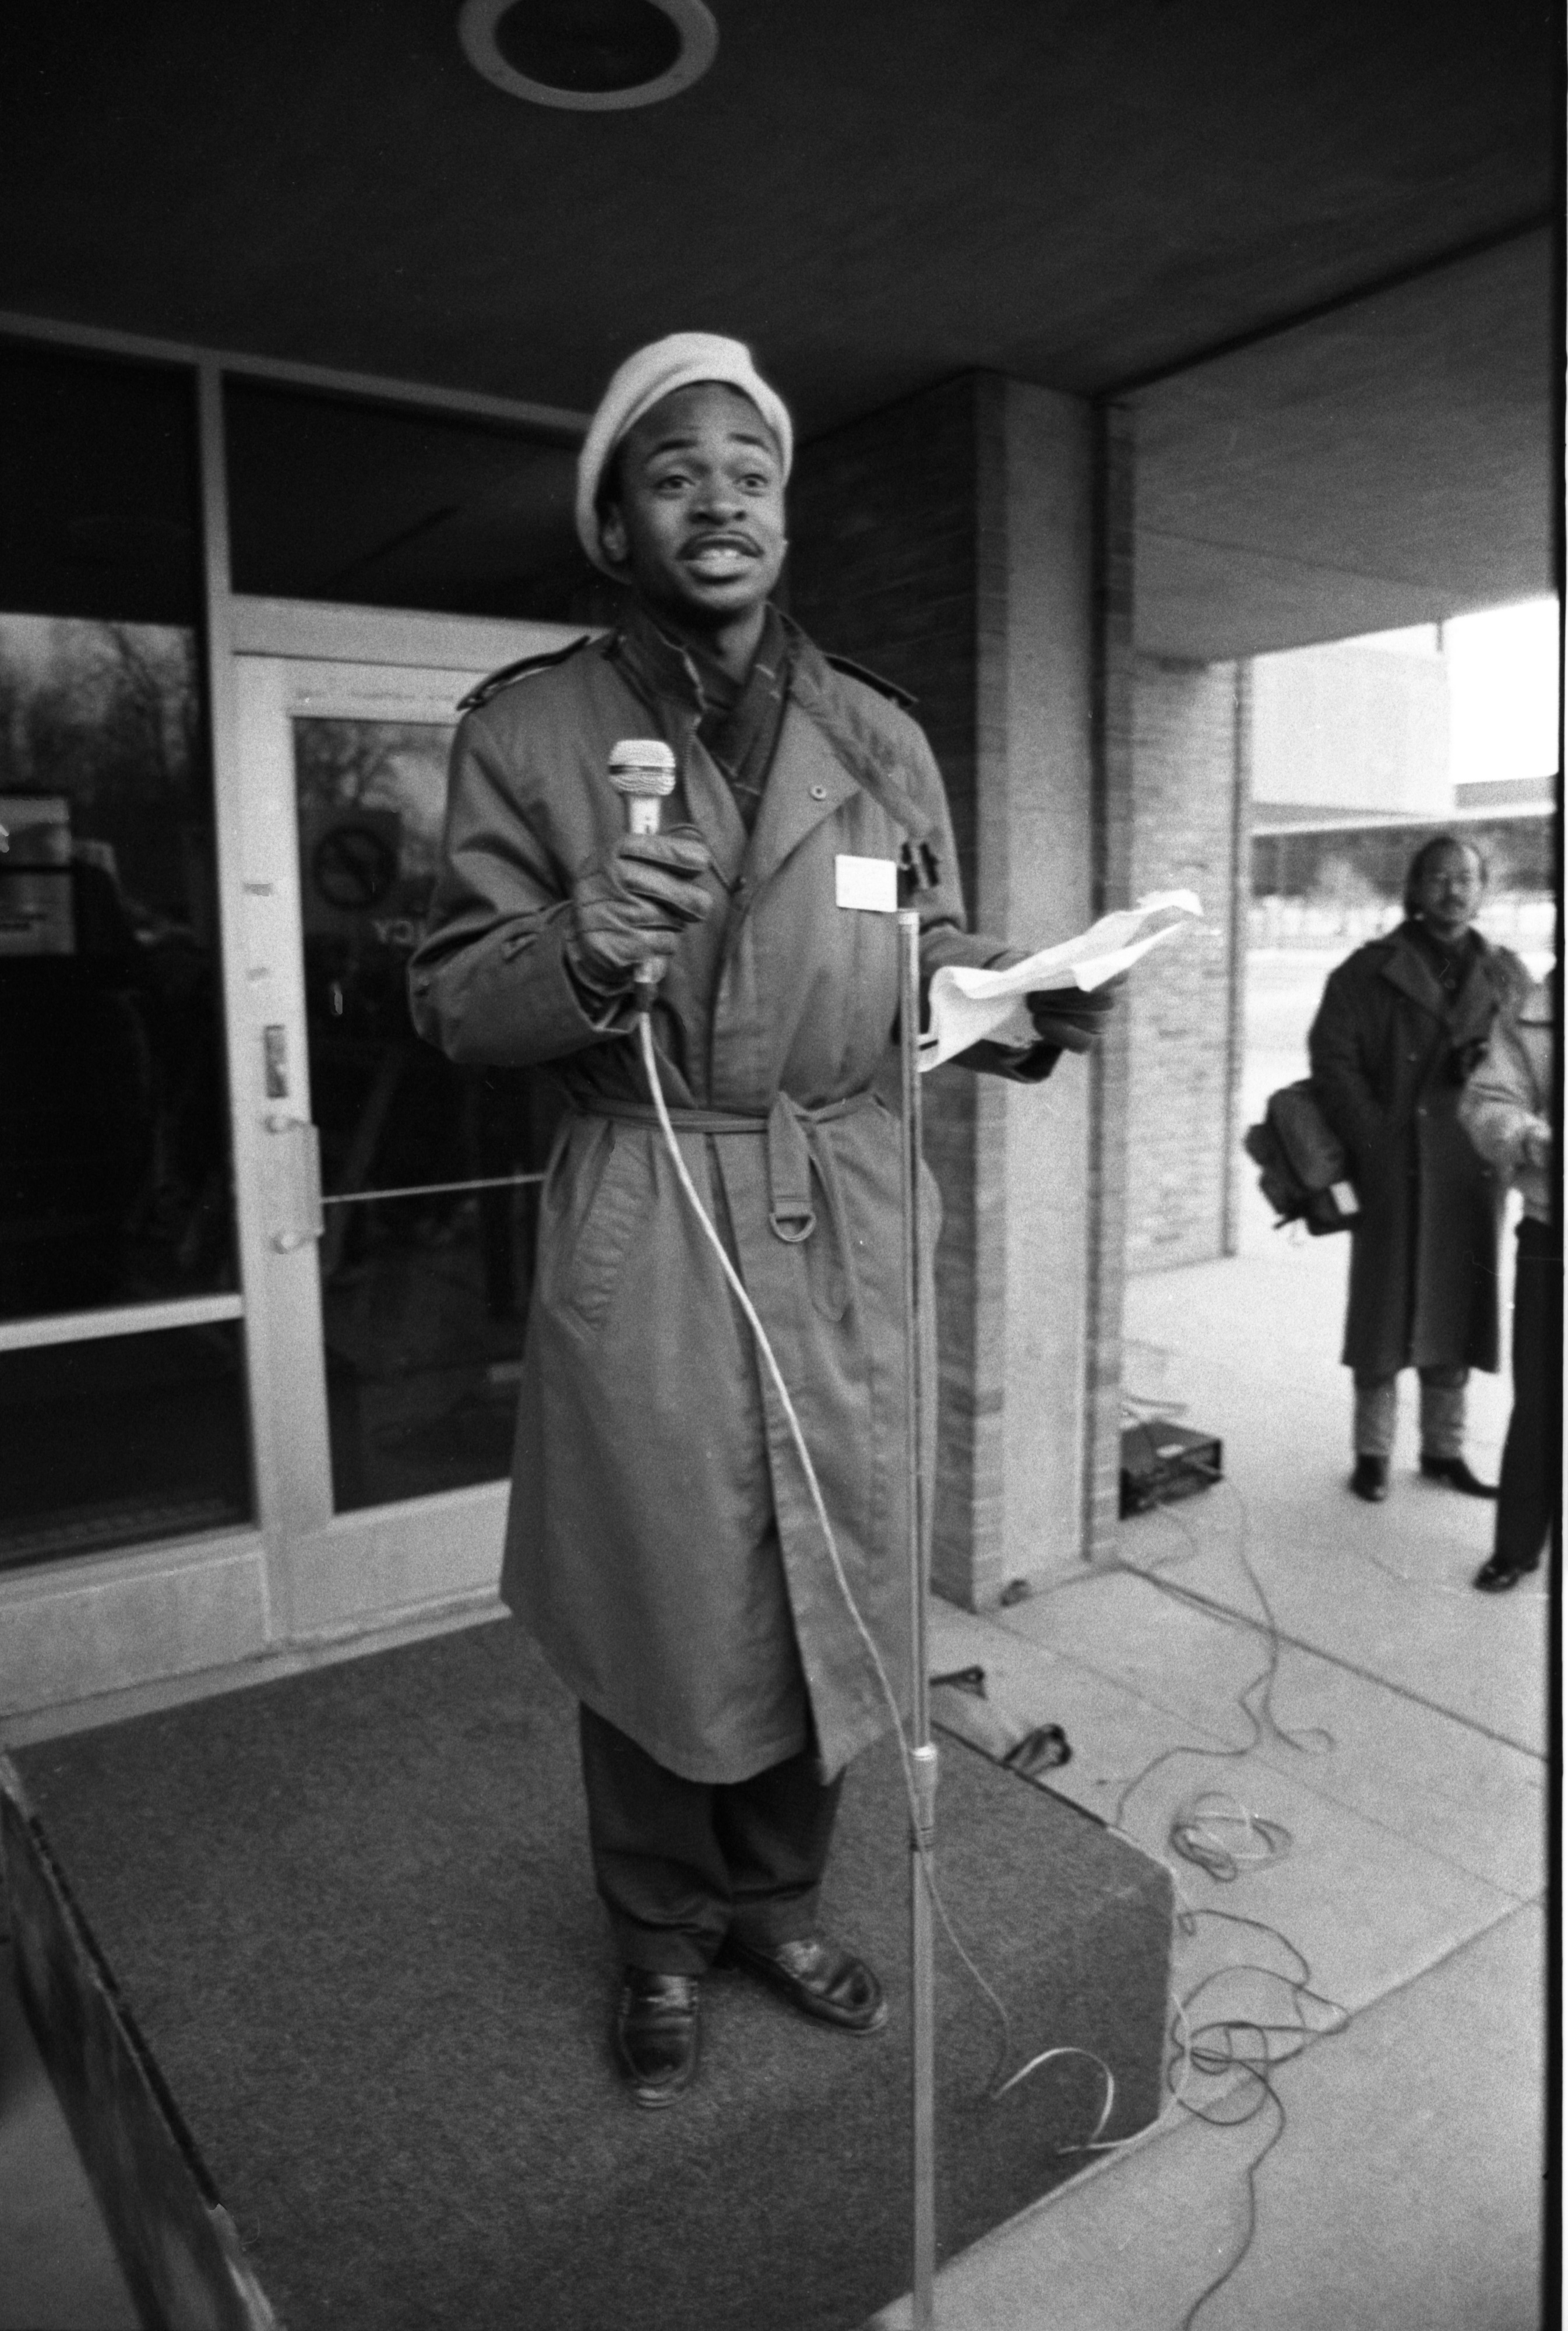 Mike Nelson, Speaker At The Anti-Racism Demonstration, February 13, 1987 image